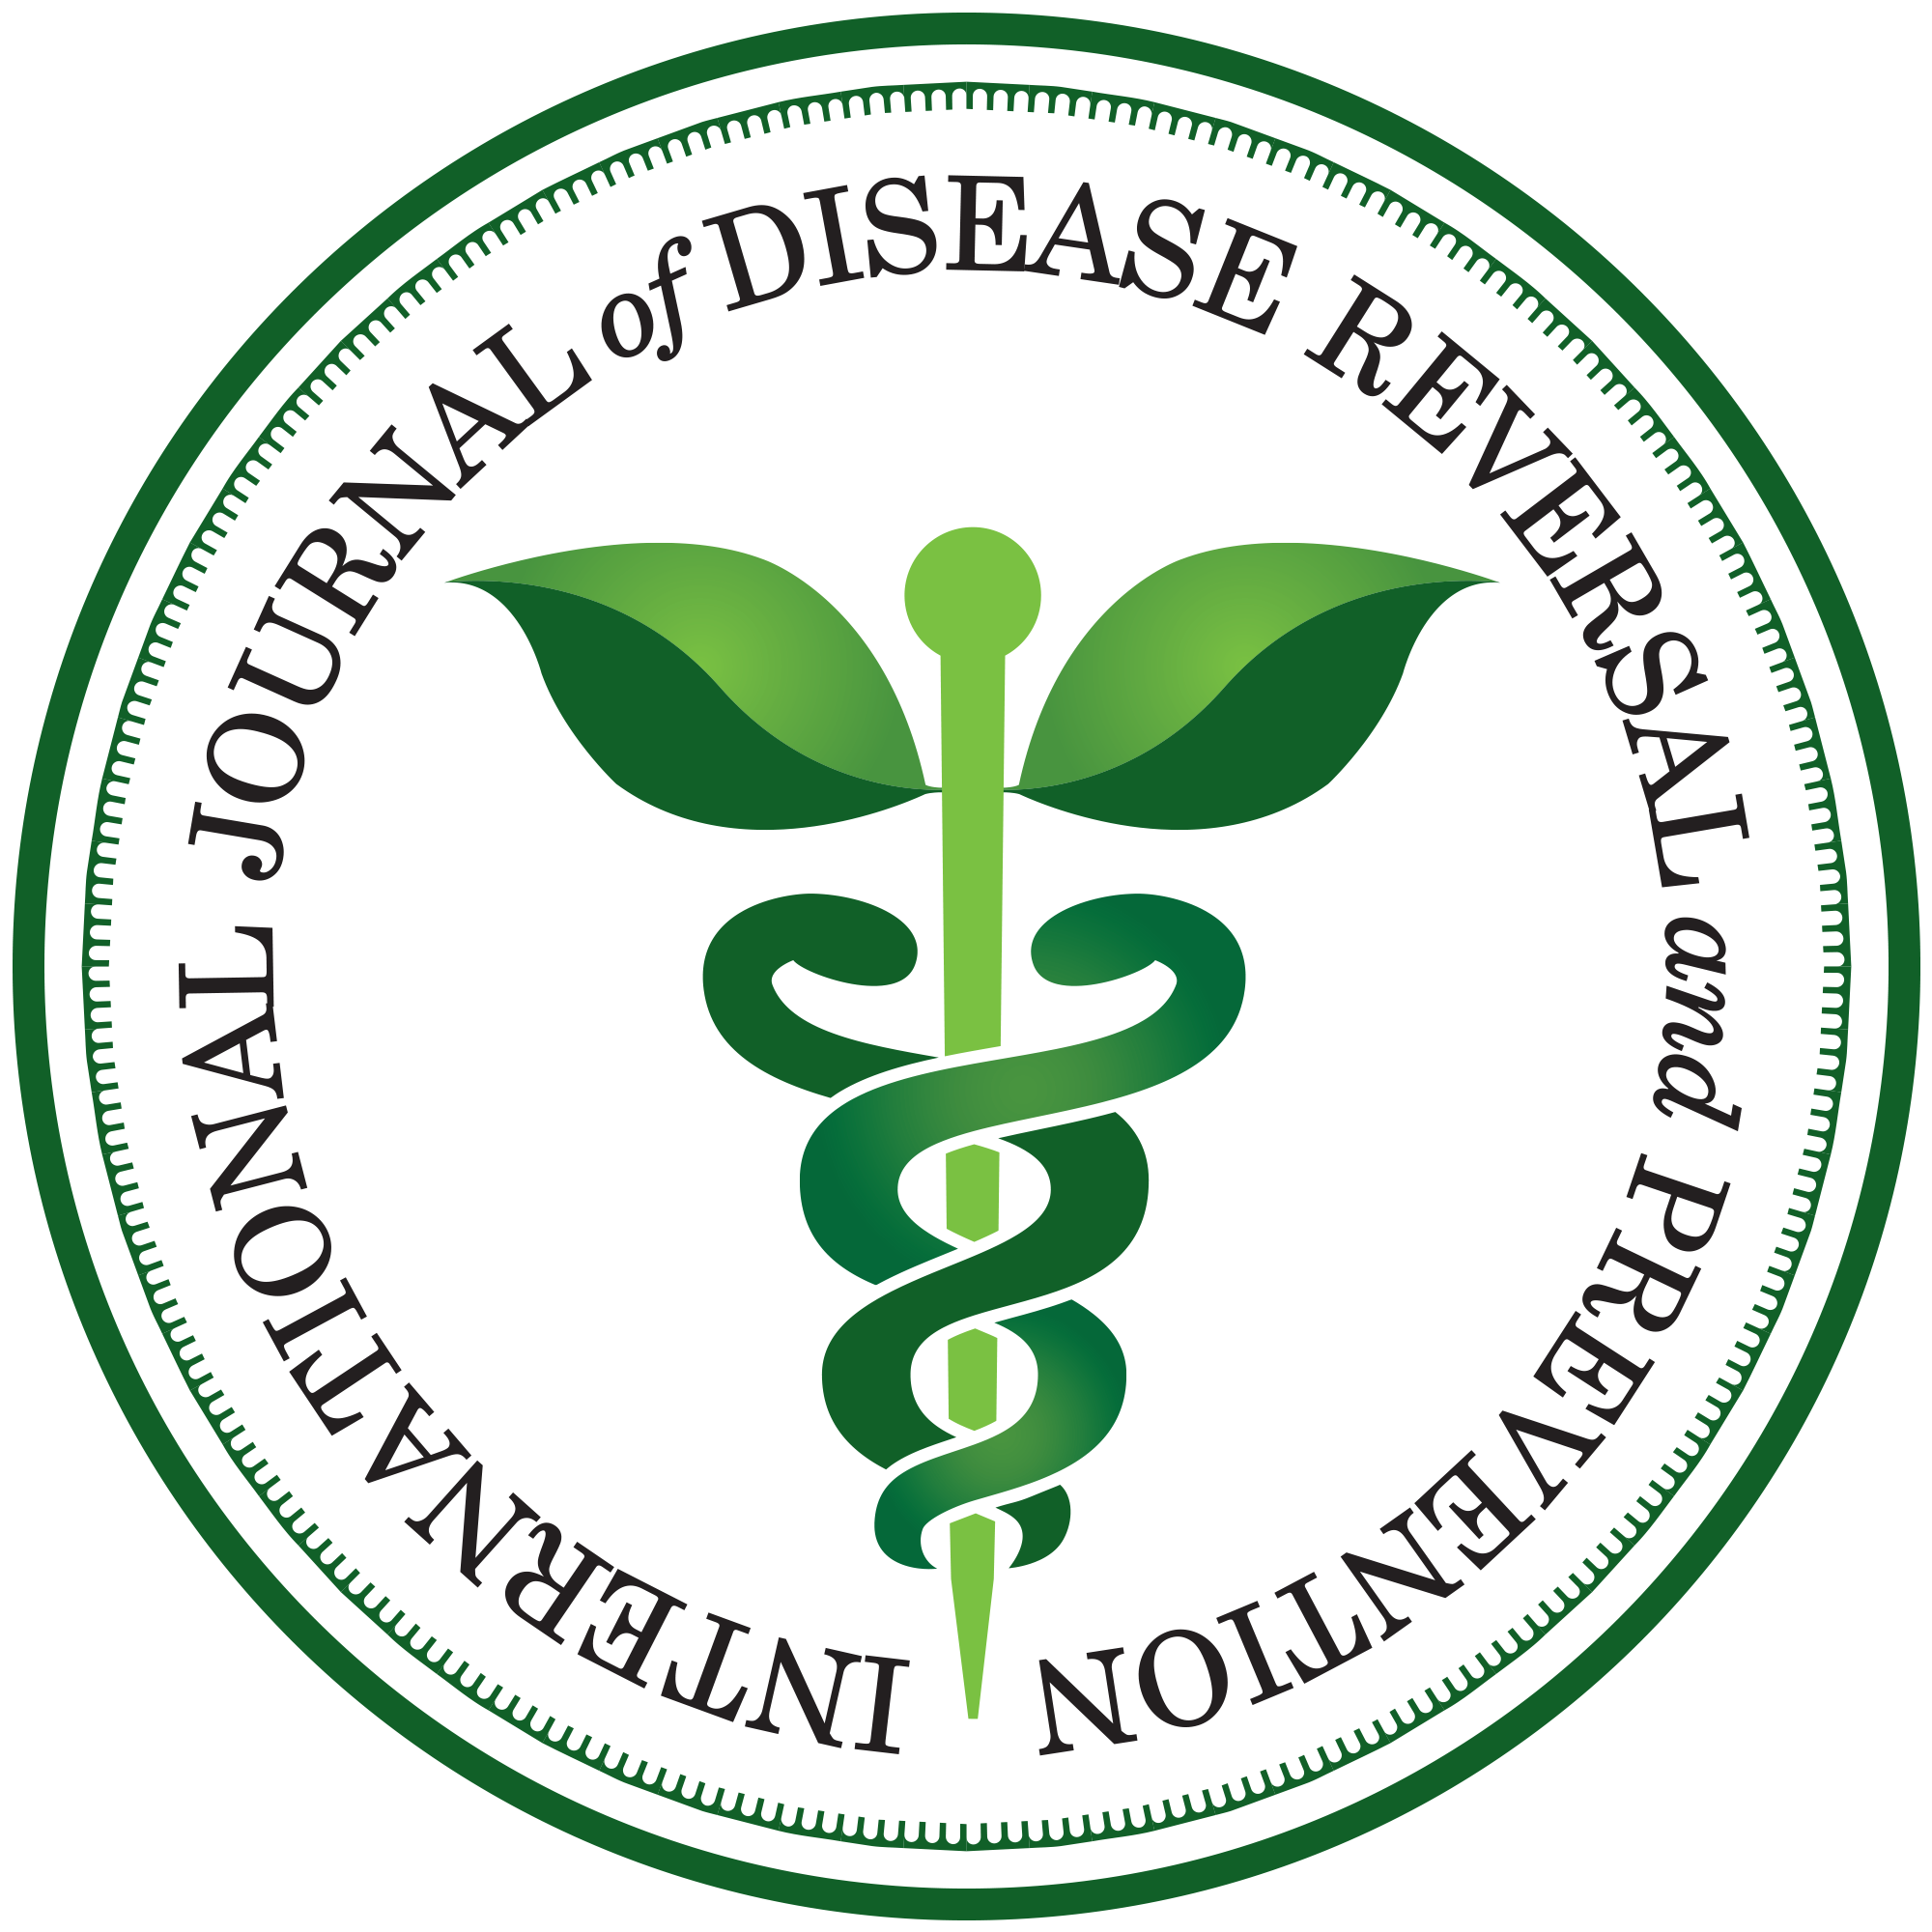 The International Journal of Disease Reversal and Prevention